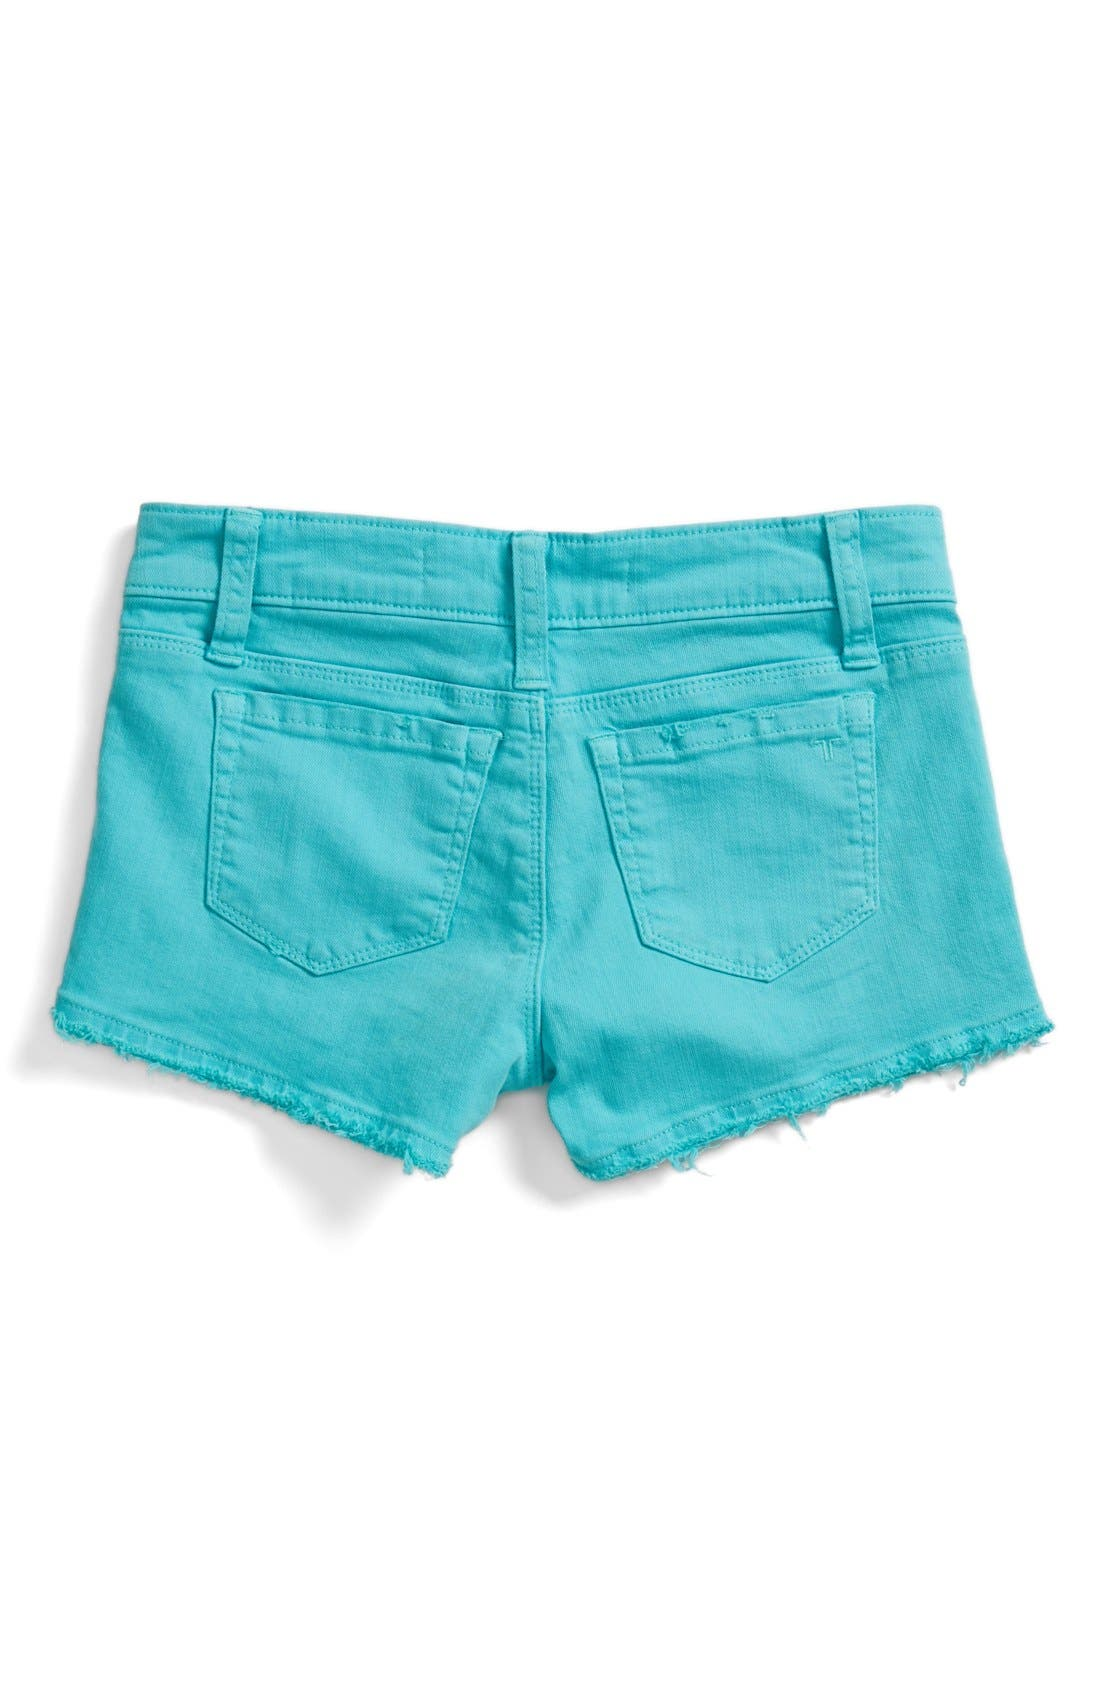 Frayed Shorts,                         Main,                         color, 400